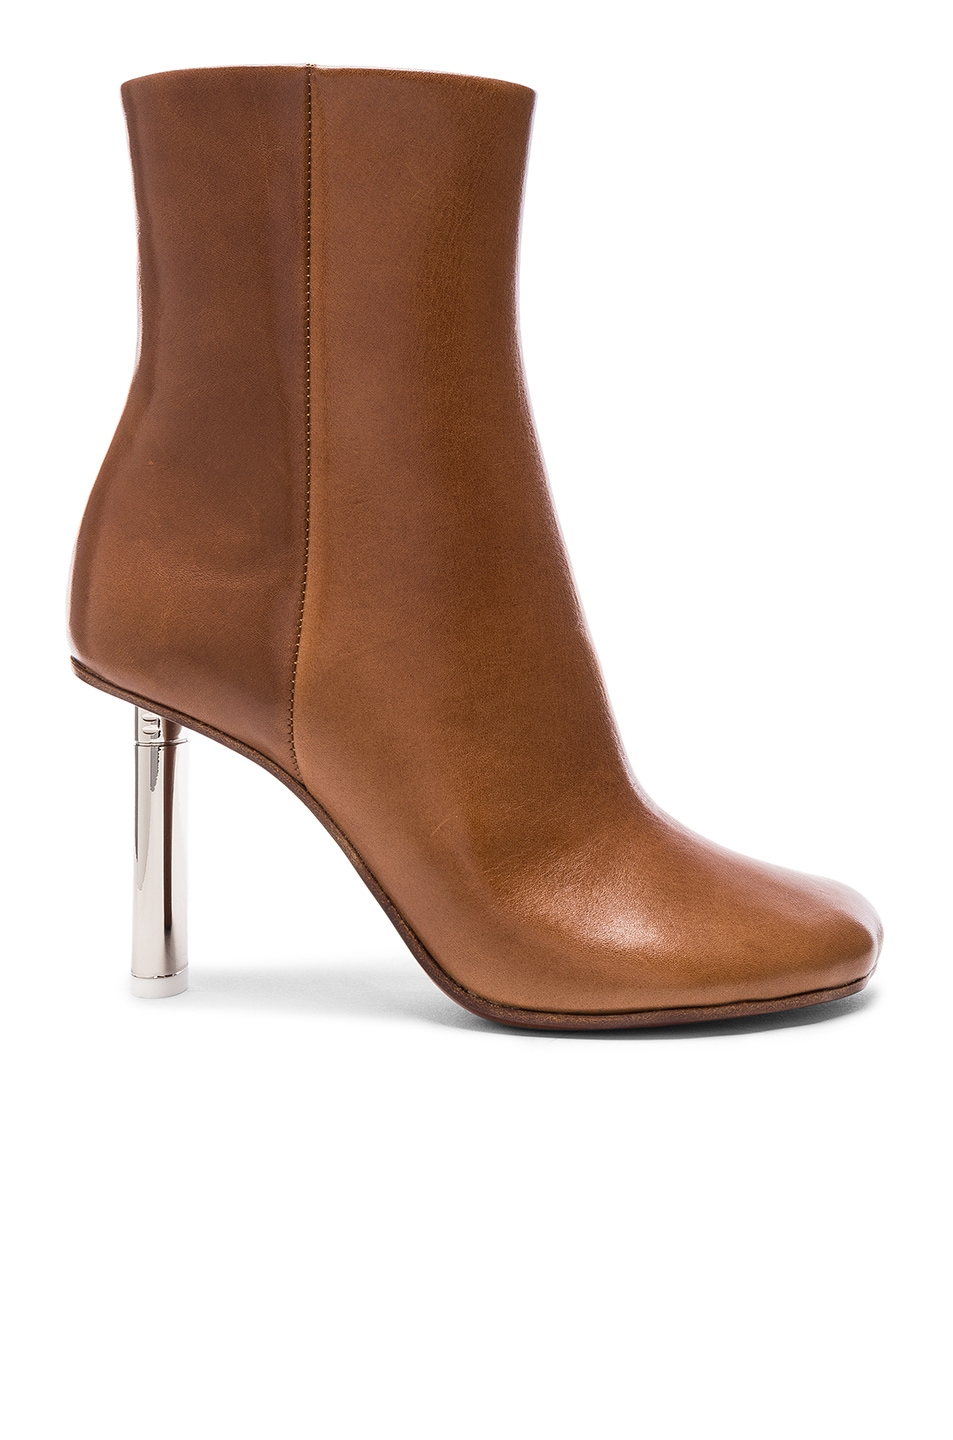 Image 1 of VETEMENTS Leather Toe Ankle Boots in Brown & Silver